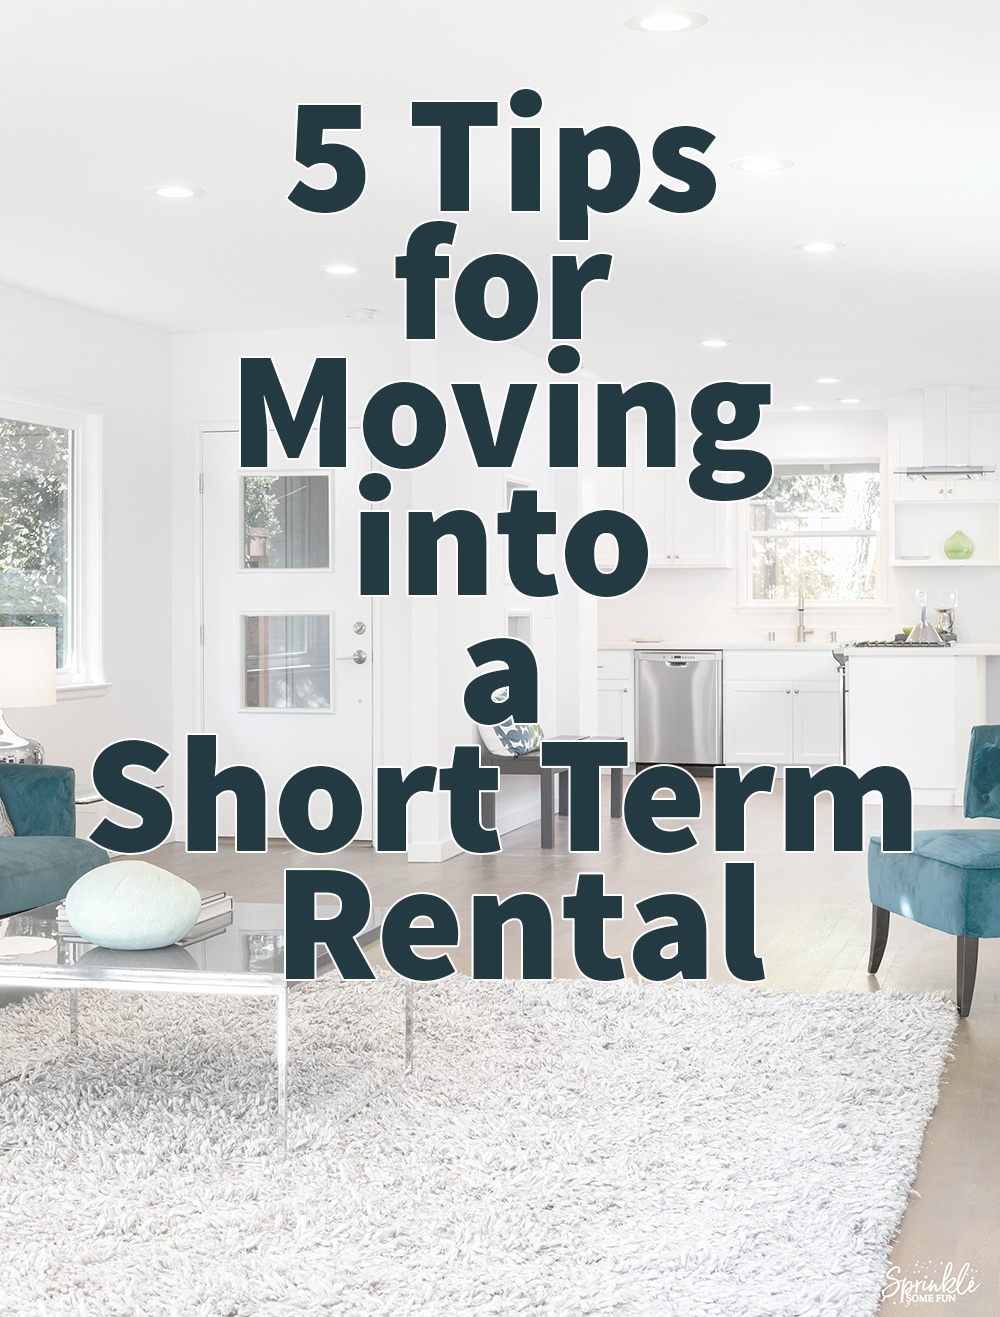 5 Tips for Moving into a Short Term Rental.  What to do if you are only moving for 3-6 months.